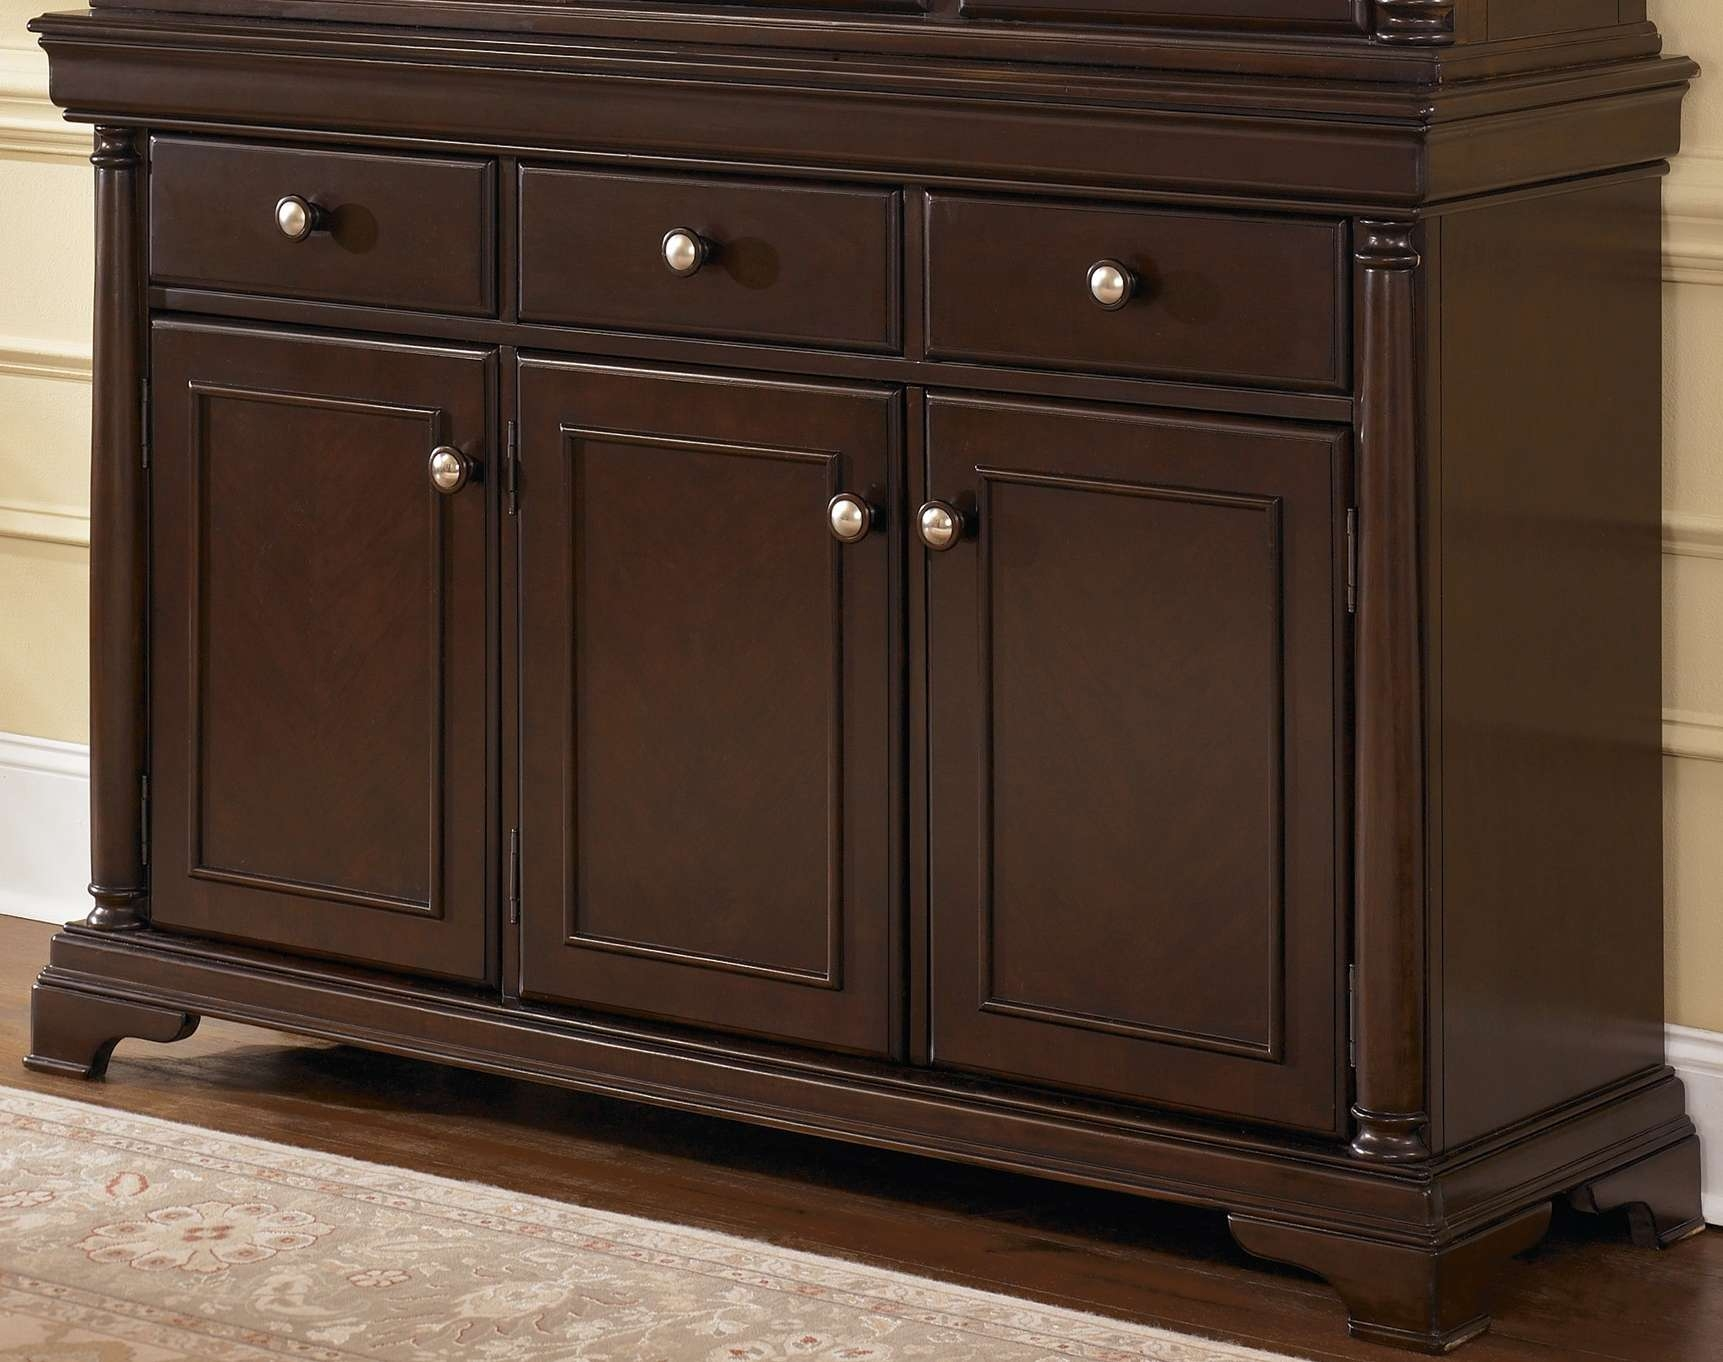 Dining Room Credenza Ideas Including Buffet Cabinet Pictures Inside Black Dining Room Sideboards (View 11 of 20)